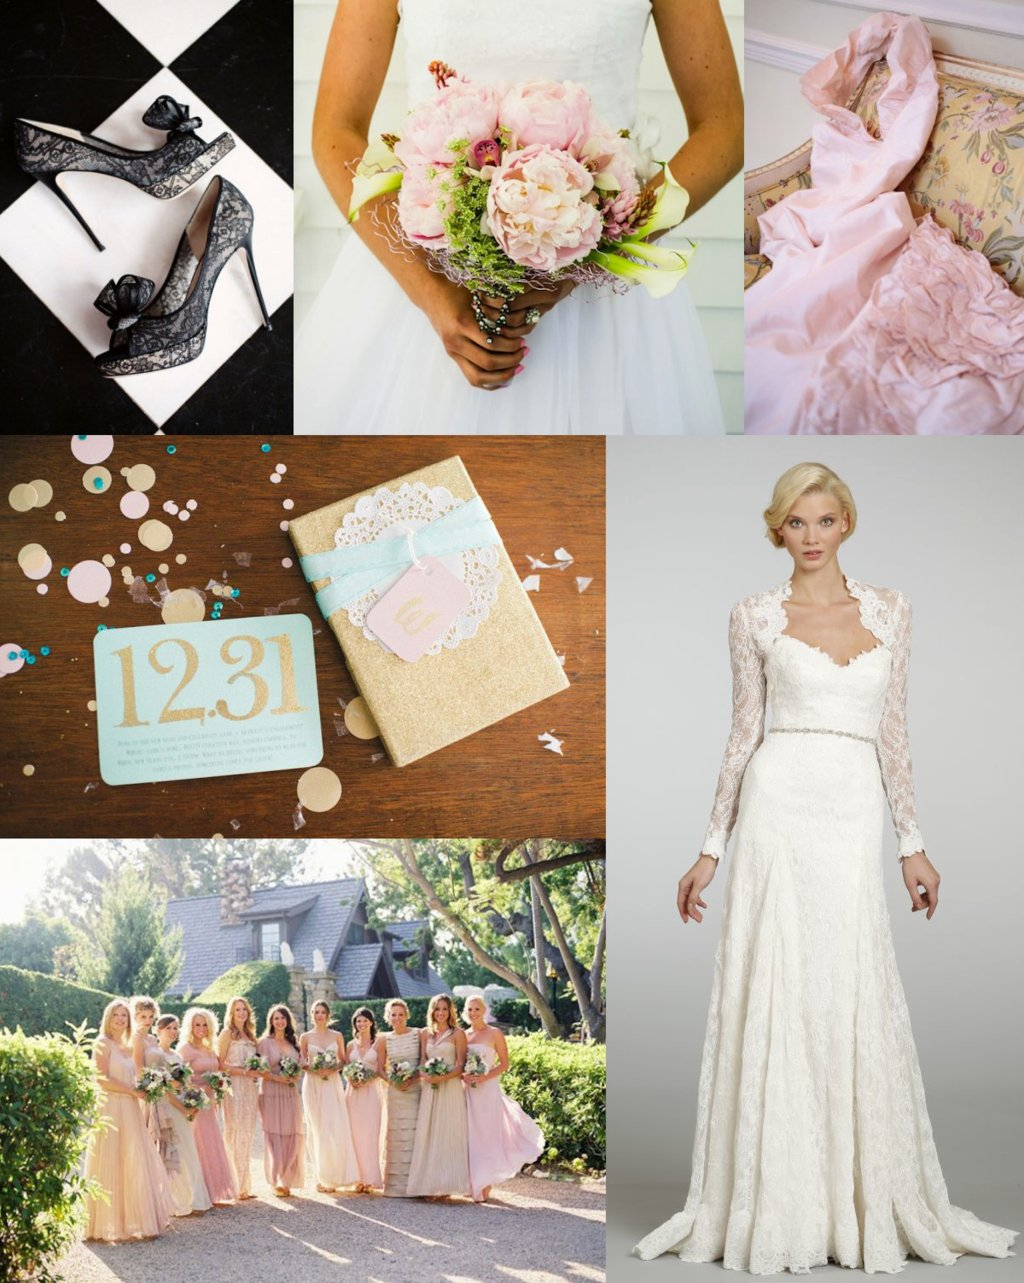 2012-wedding-roundup-best-of-weddings.full